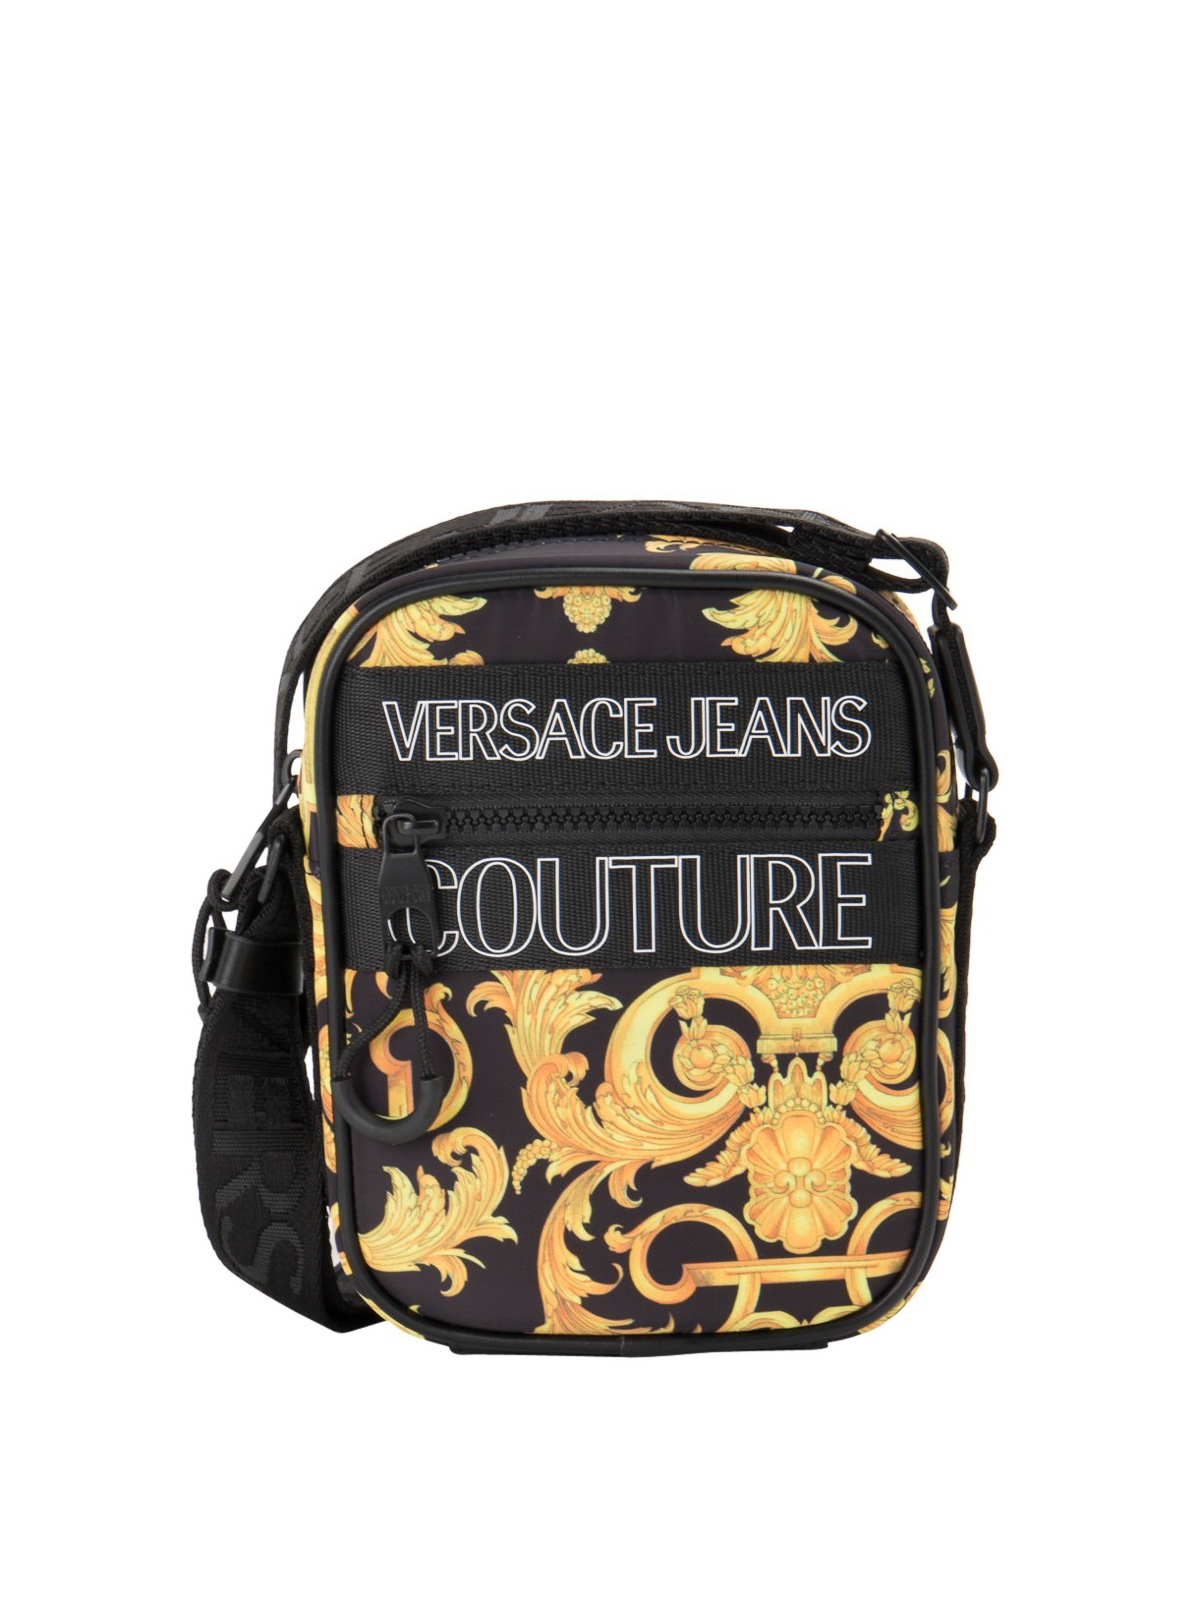 Versace Jeans Couture BAROQUE PRINT FABRIC CROSSBODY BAG